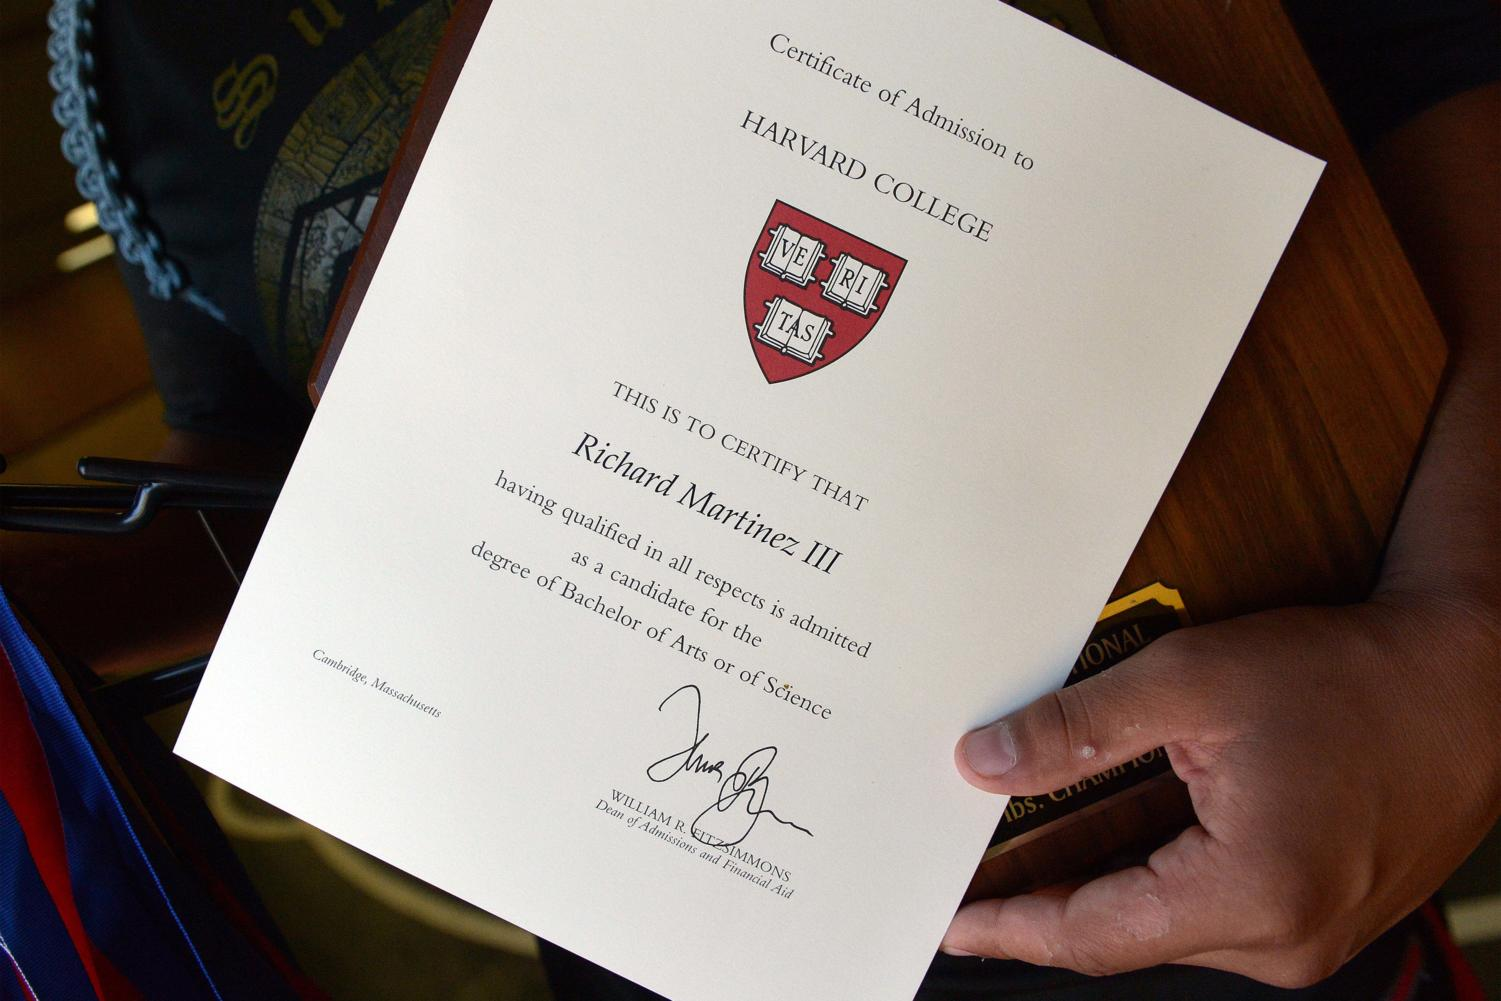 Richard Martinez III holds up a certificate showing his admission to Harvard, which he will attend in the fall, on Monday, June 13, 2017.  (Craig Kohlruss/Fresno Bee/TNS)